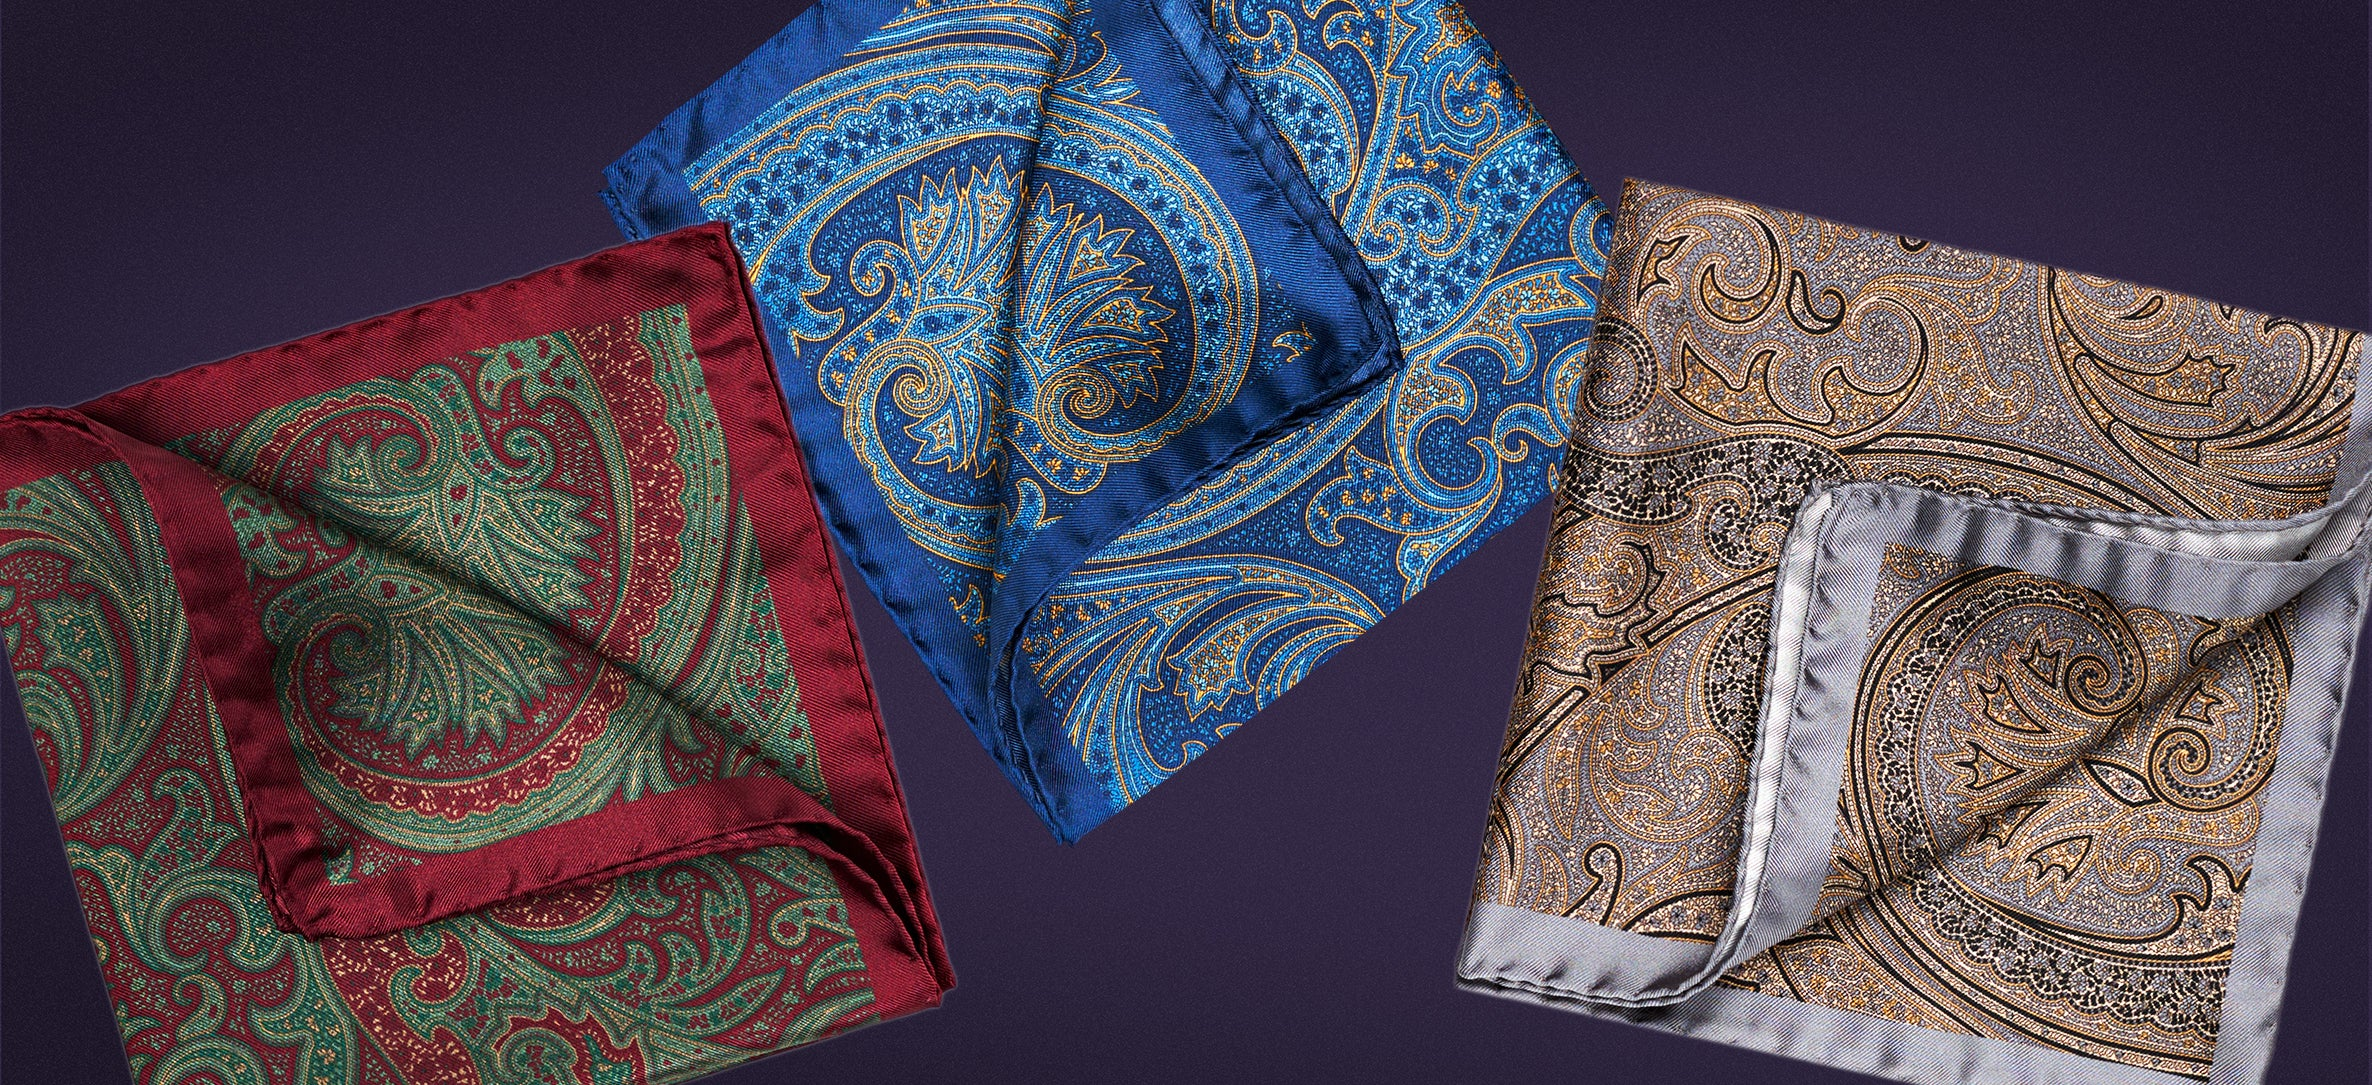 Silk pocket squares made in Italy with paisley print in burgundy/green, blue/yellow and gold/silver. One free when you order a scarf